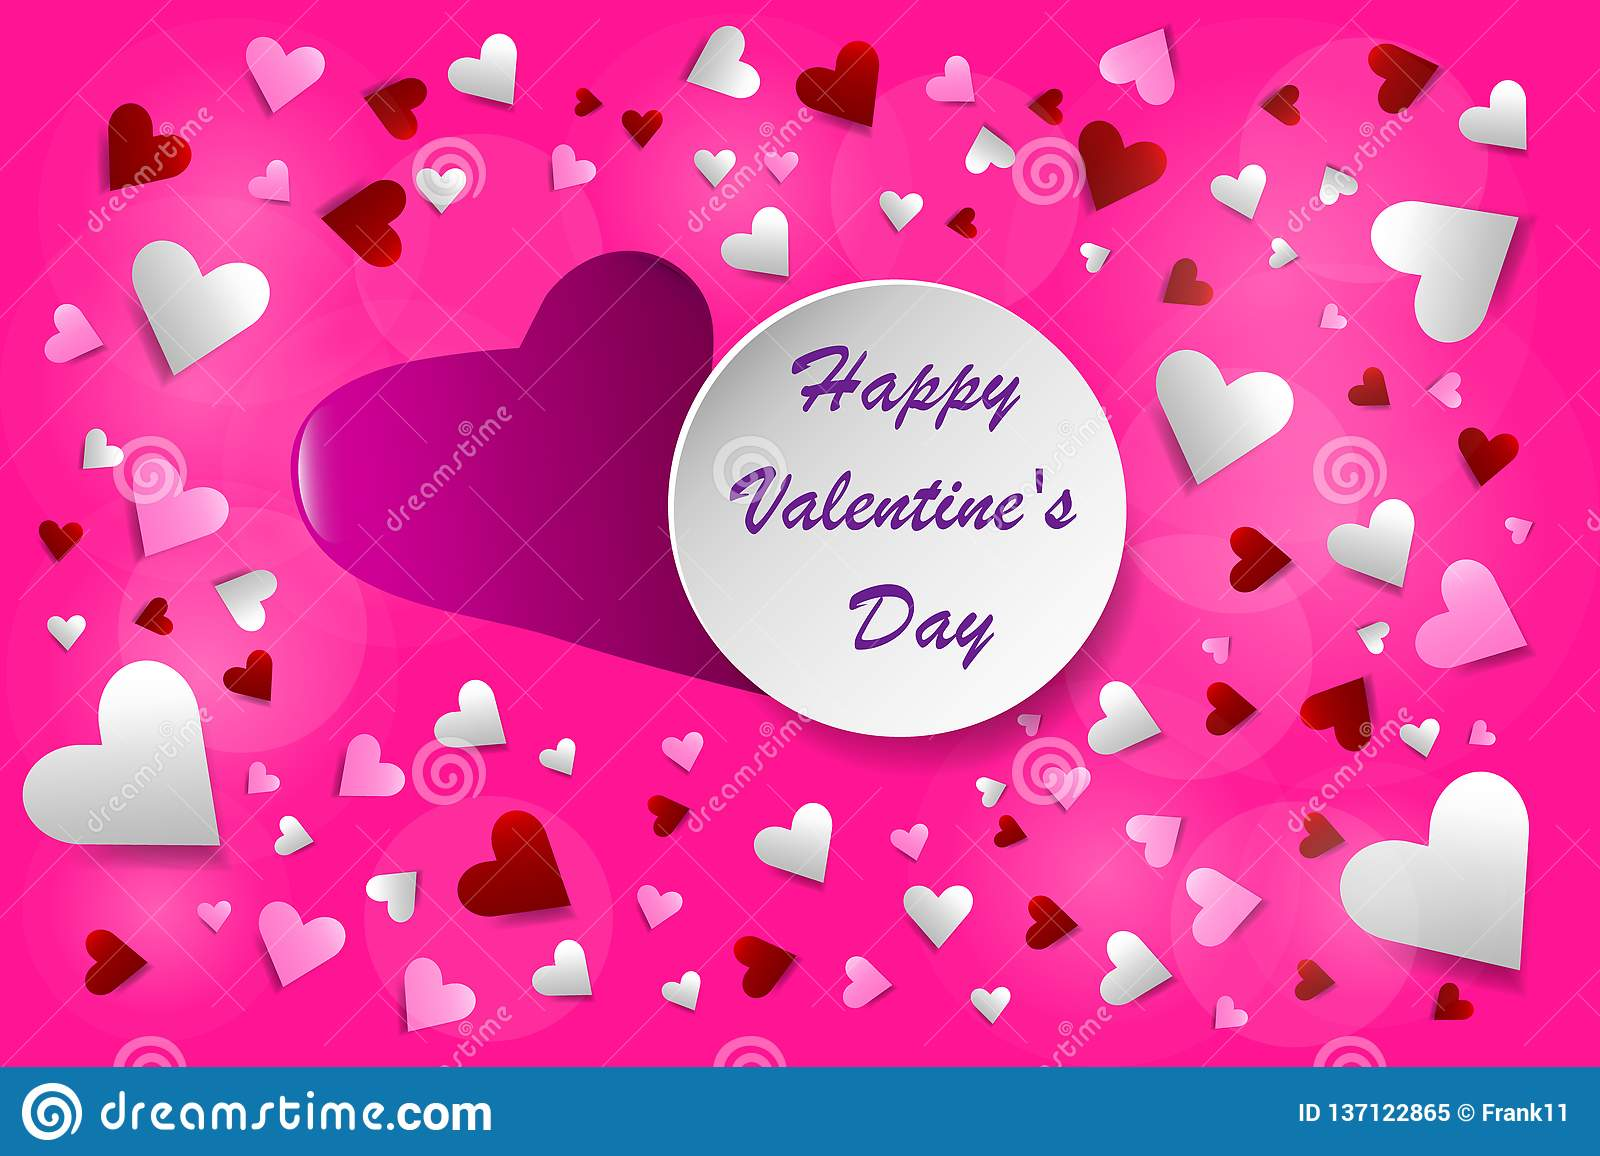 Happy Valentine\'s Day postcard pink vector royalty free stock photo